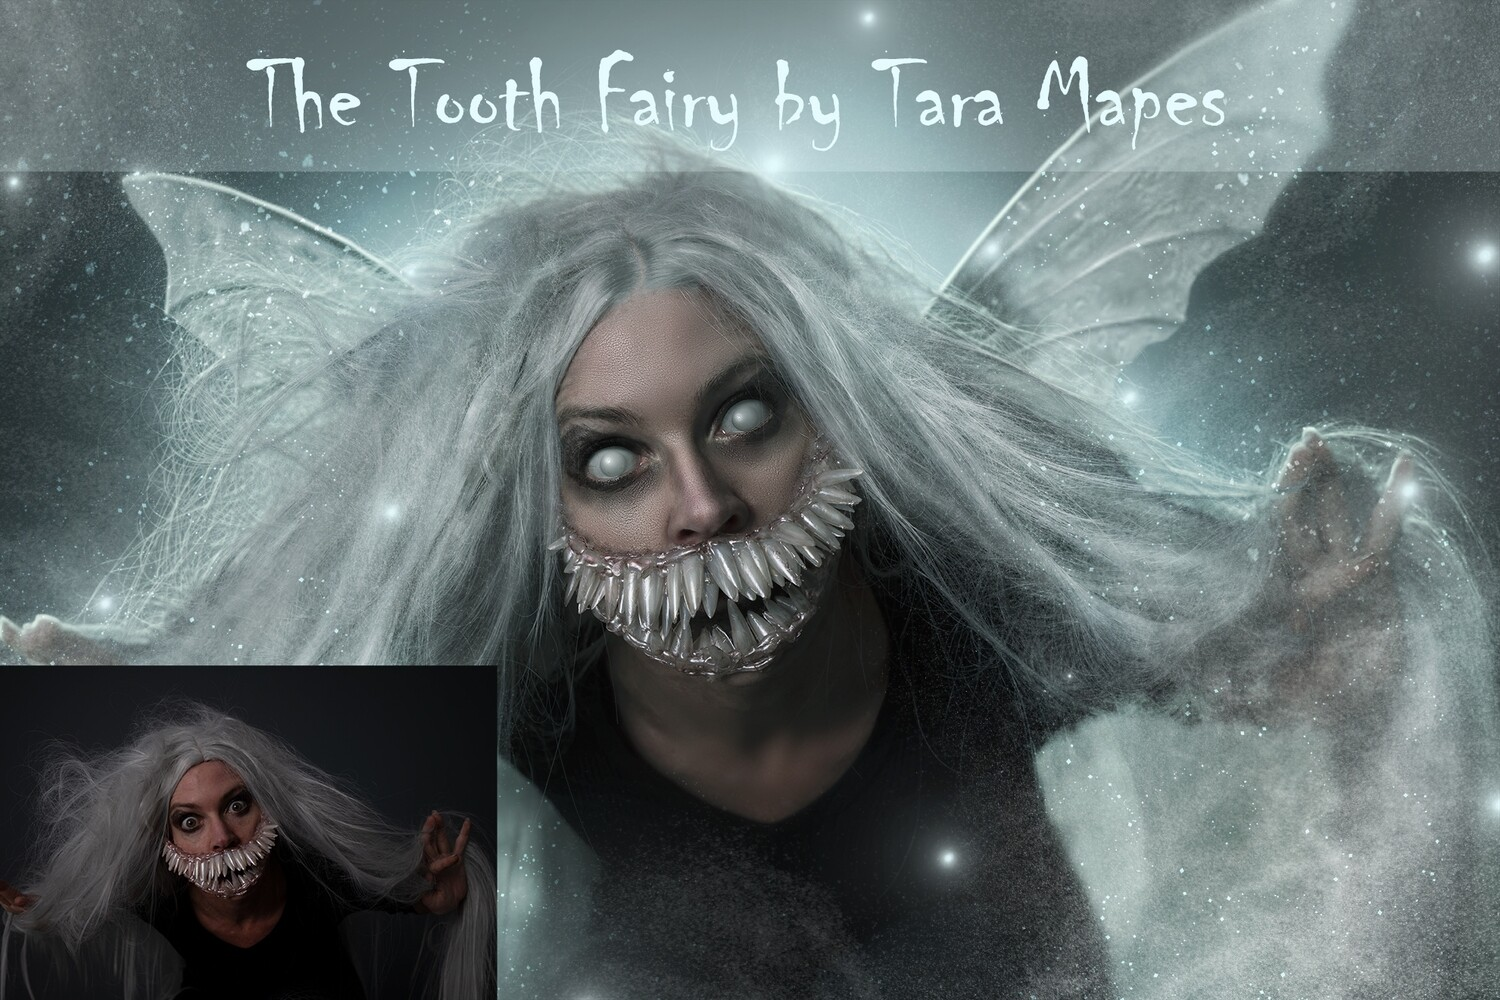 The Tooth Fairy Photoshop Tutorial - Fine Art Facial Action Workflow Set Included- Fine Art Painterly Surreal Tutorial by Tara Mapes